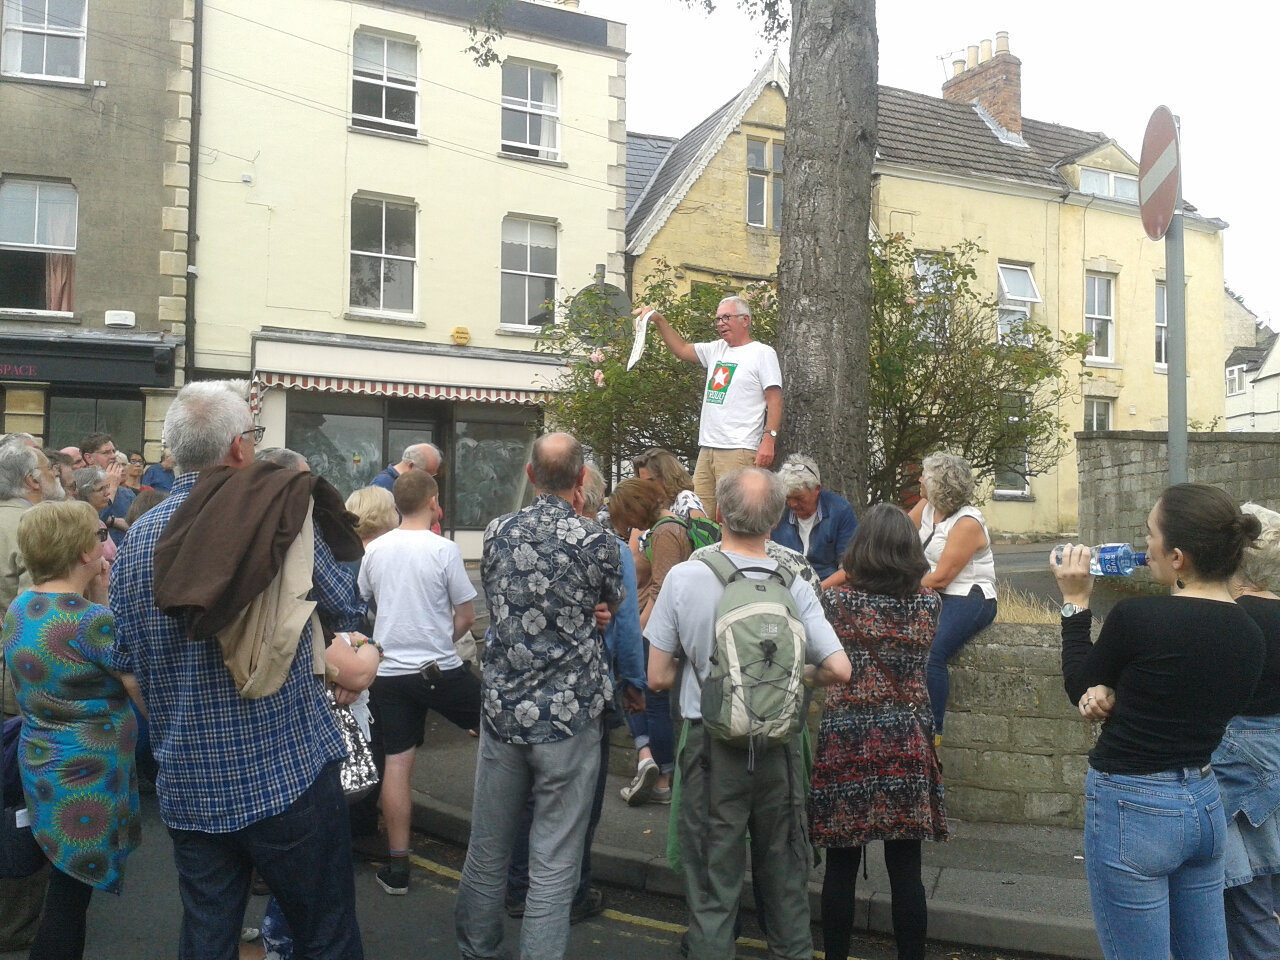 Stroud Fringe 2016 Weavers and Workhouse Walk (9)